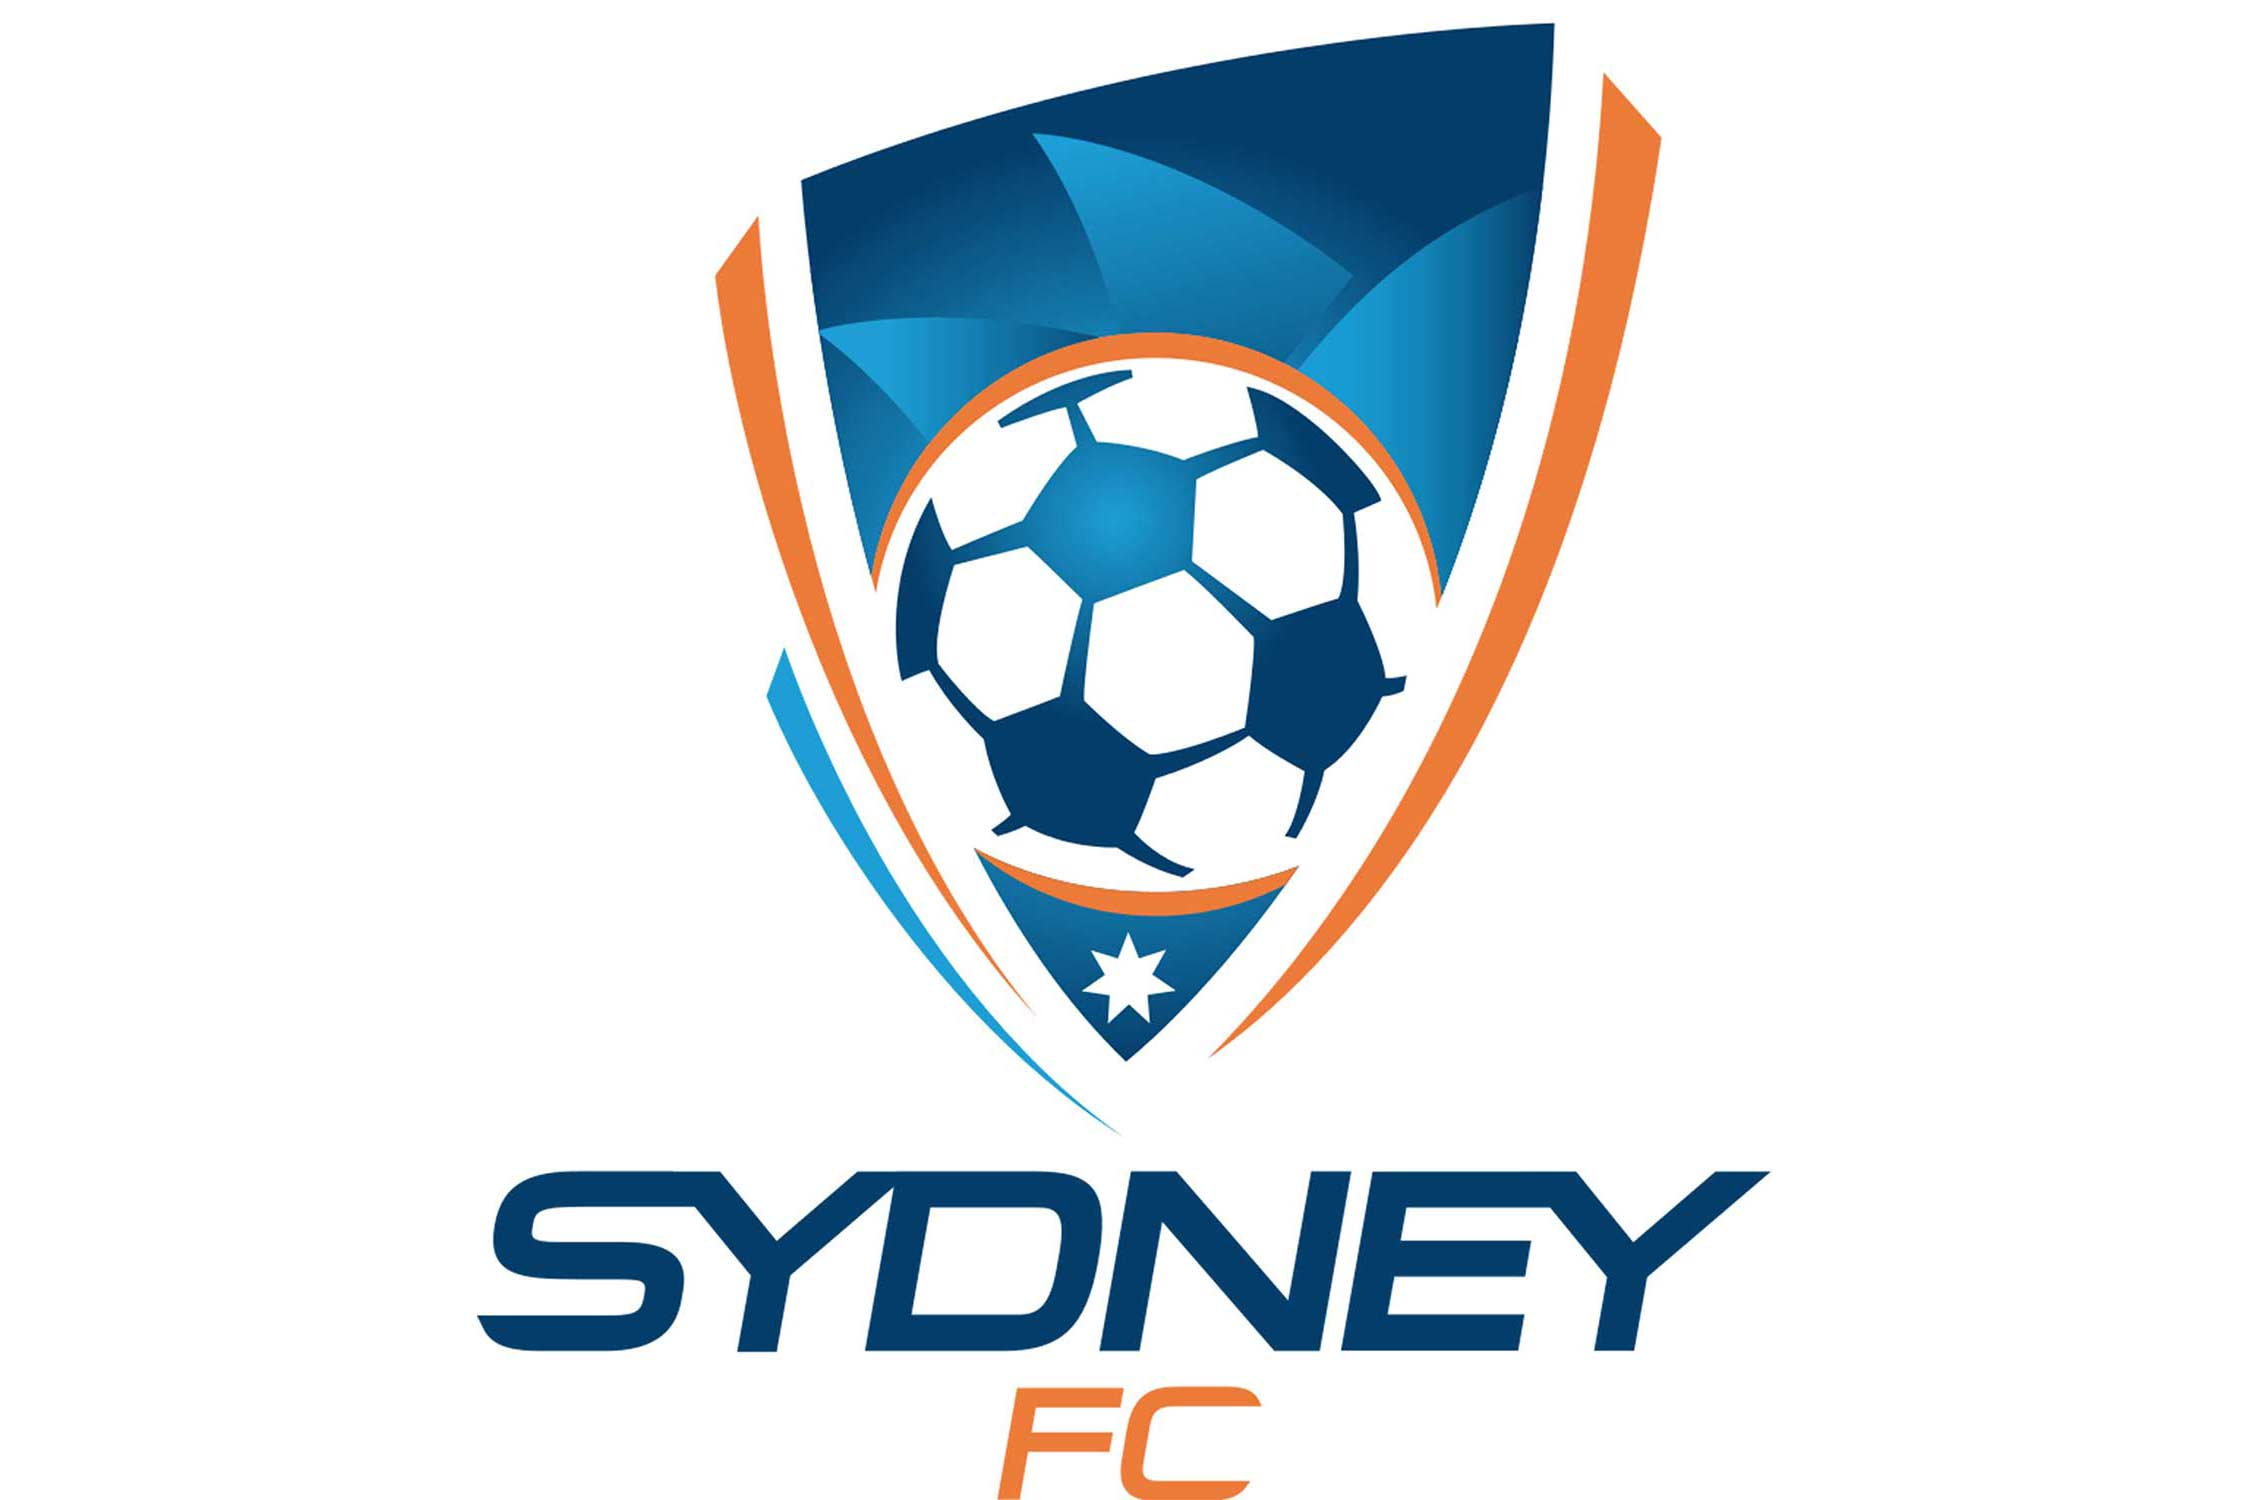 The look of the logo is meant to mimic the distinctive exterior of the Sydney Opera House, which can also be seen in the background of the logo itself.